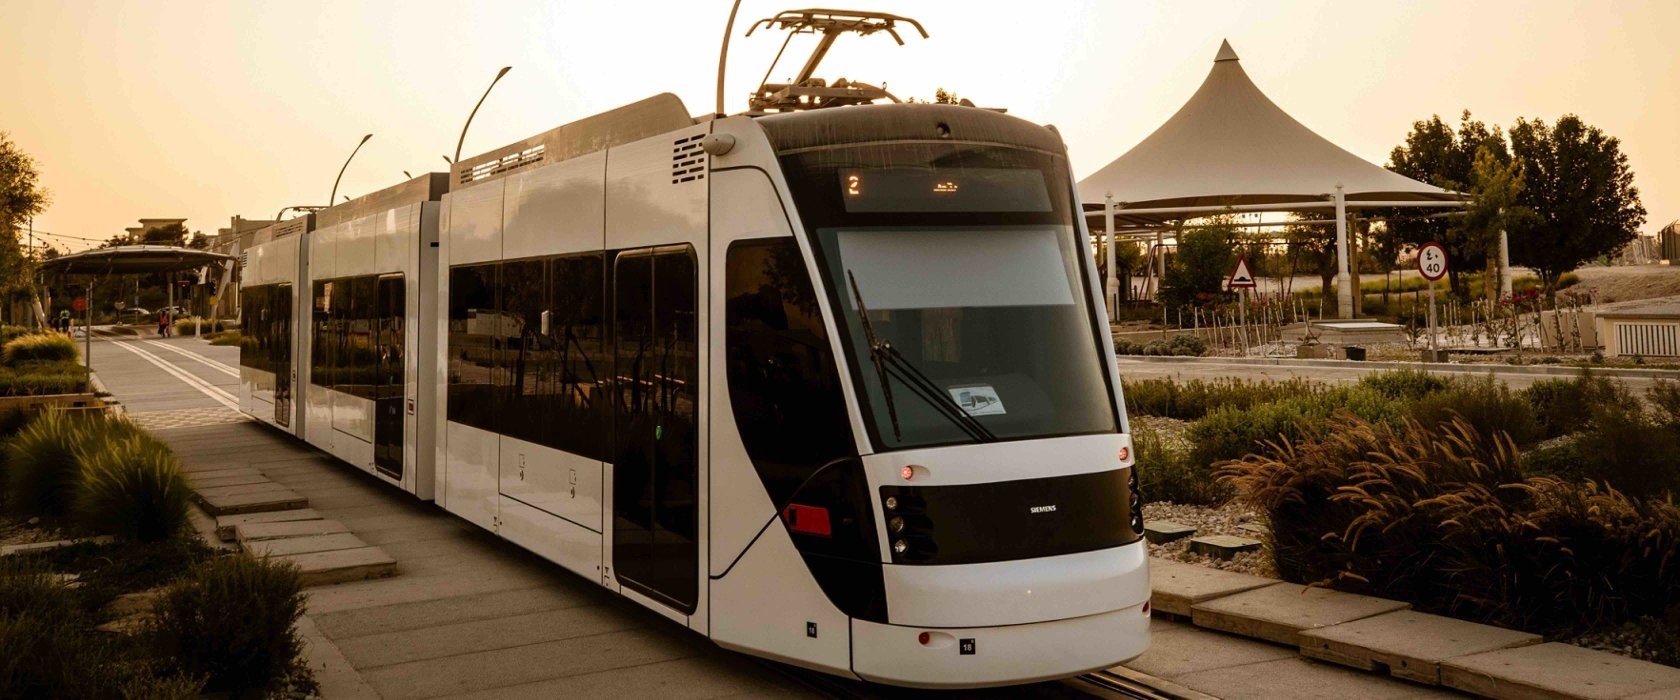 Qatar Foundation unveils the pioneering Education City tram